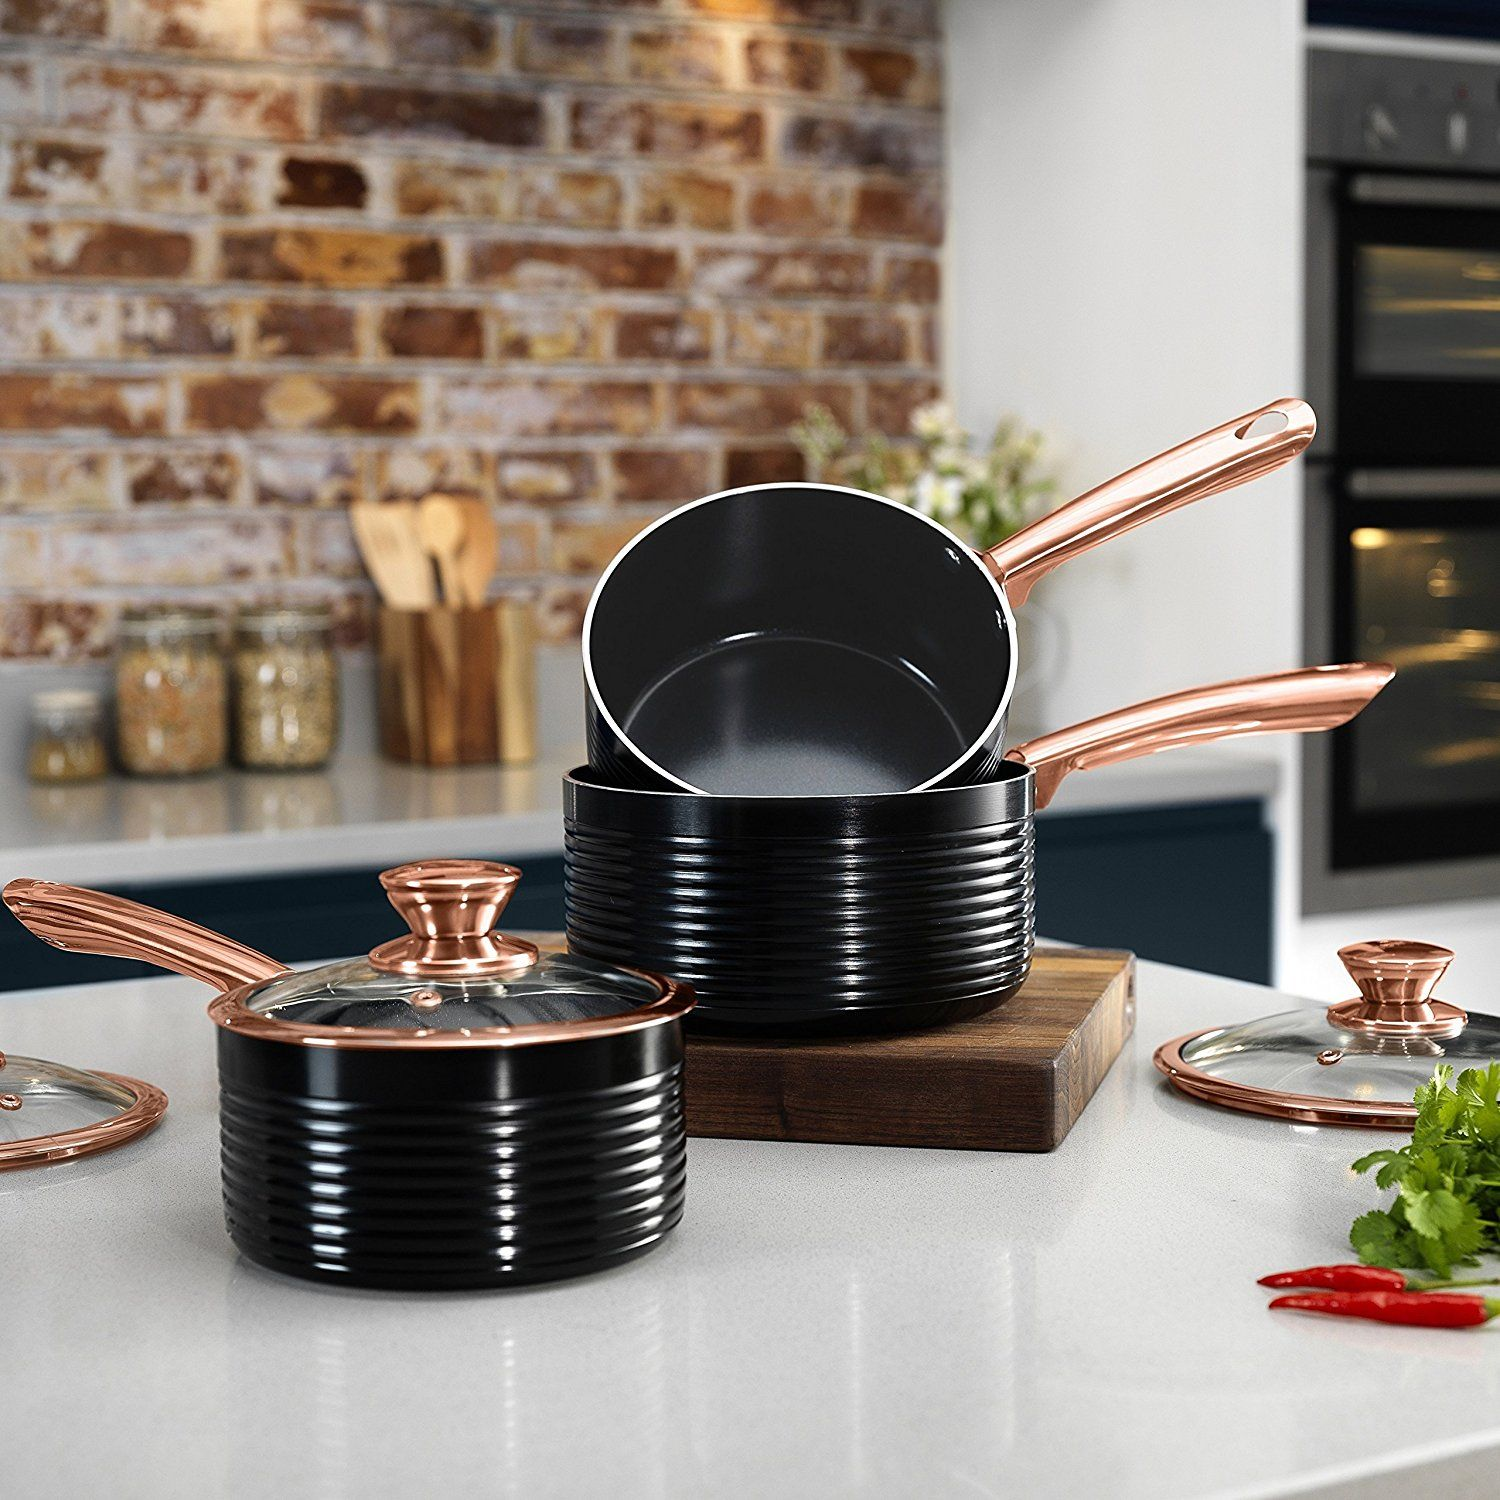 RoseGold Saucepan Set with Ceramic Non-Stick Inner Coating ...